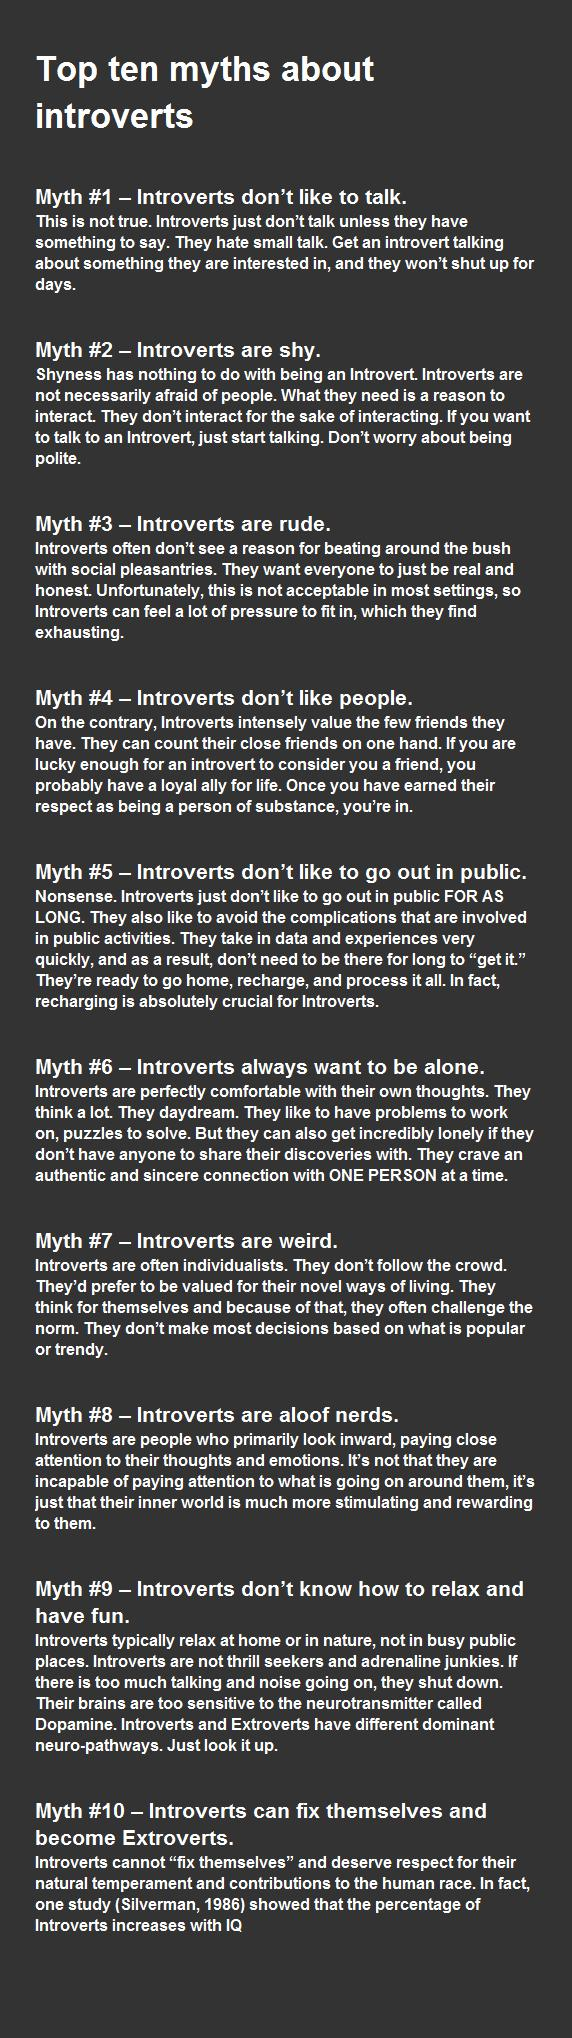 introvert personlighed